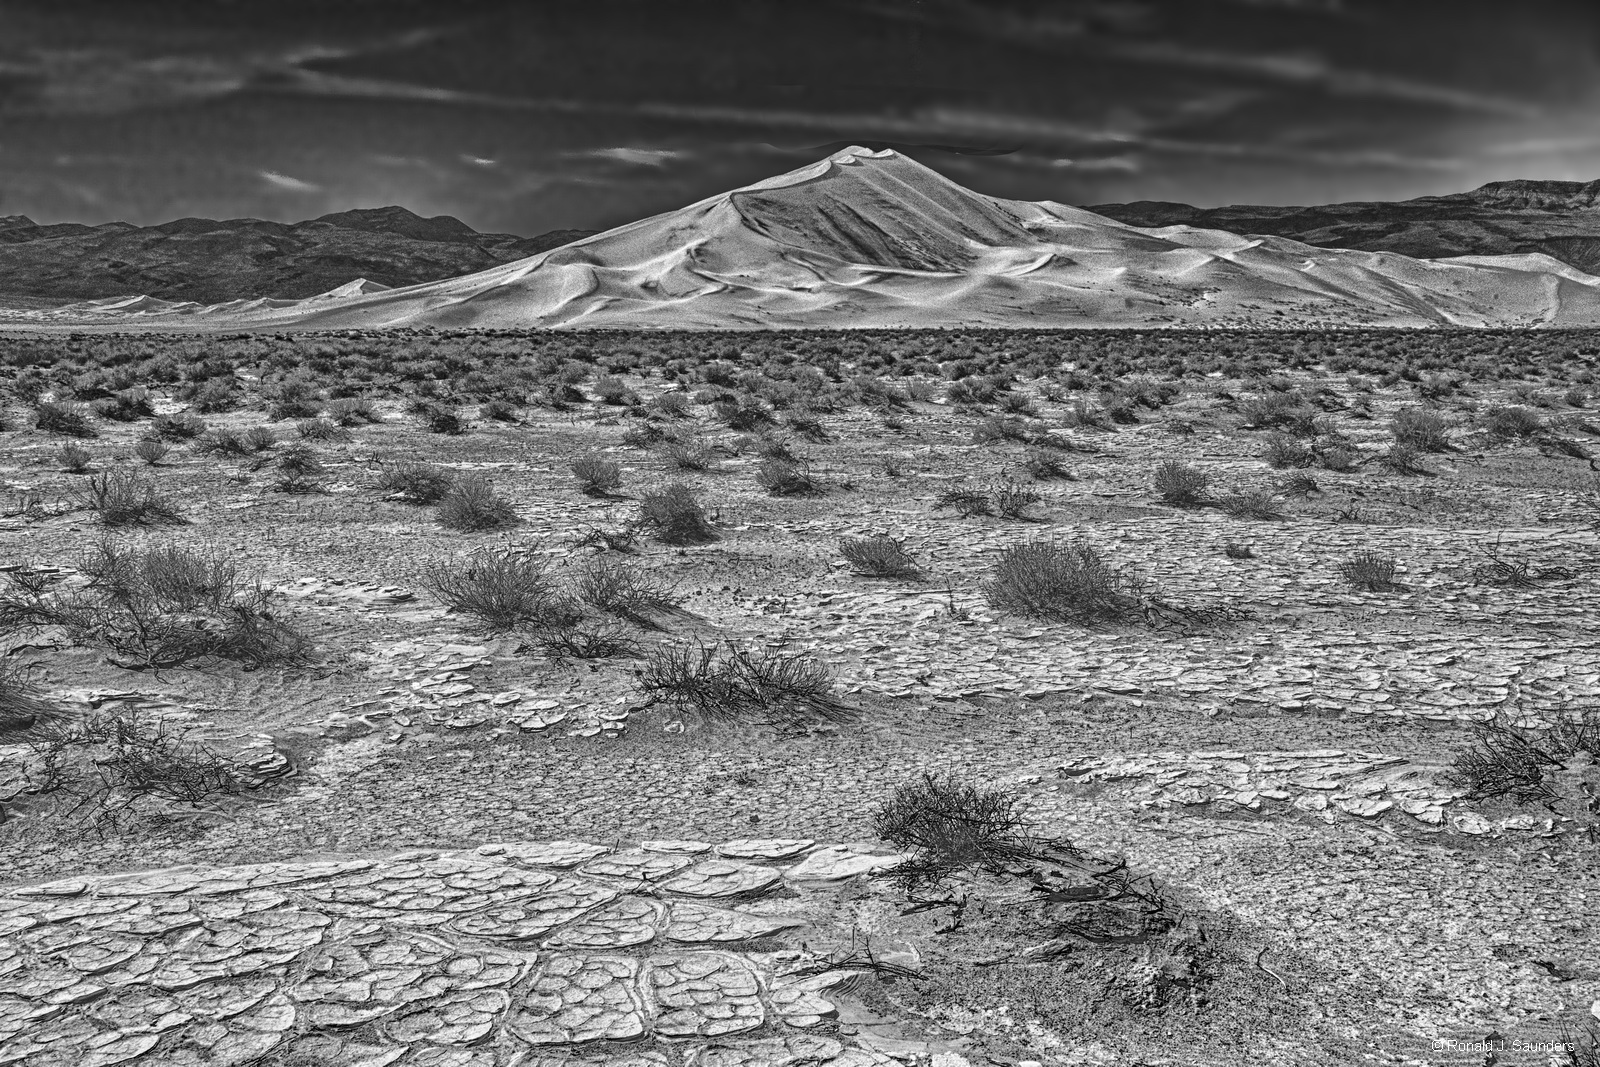 The Eureka Valley Sand Dunes are located in the southern part of Eureka Valley, in northern Inyo County in eastern California...